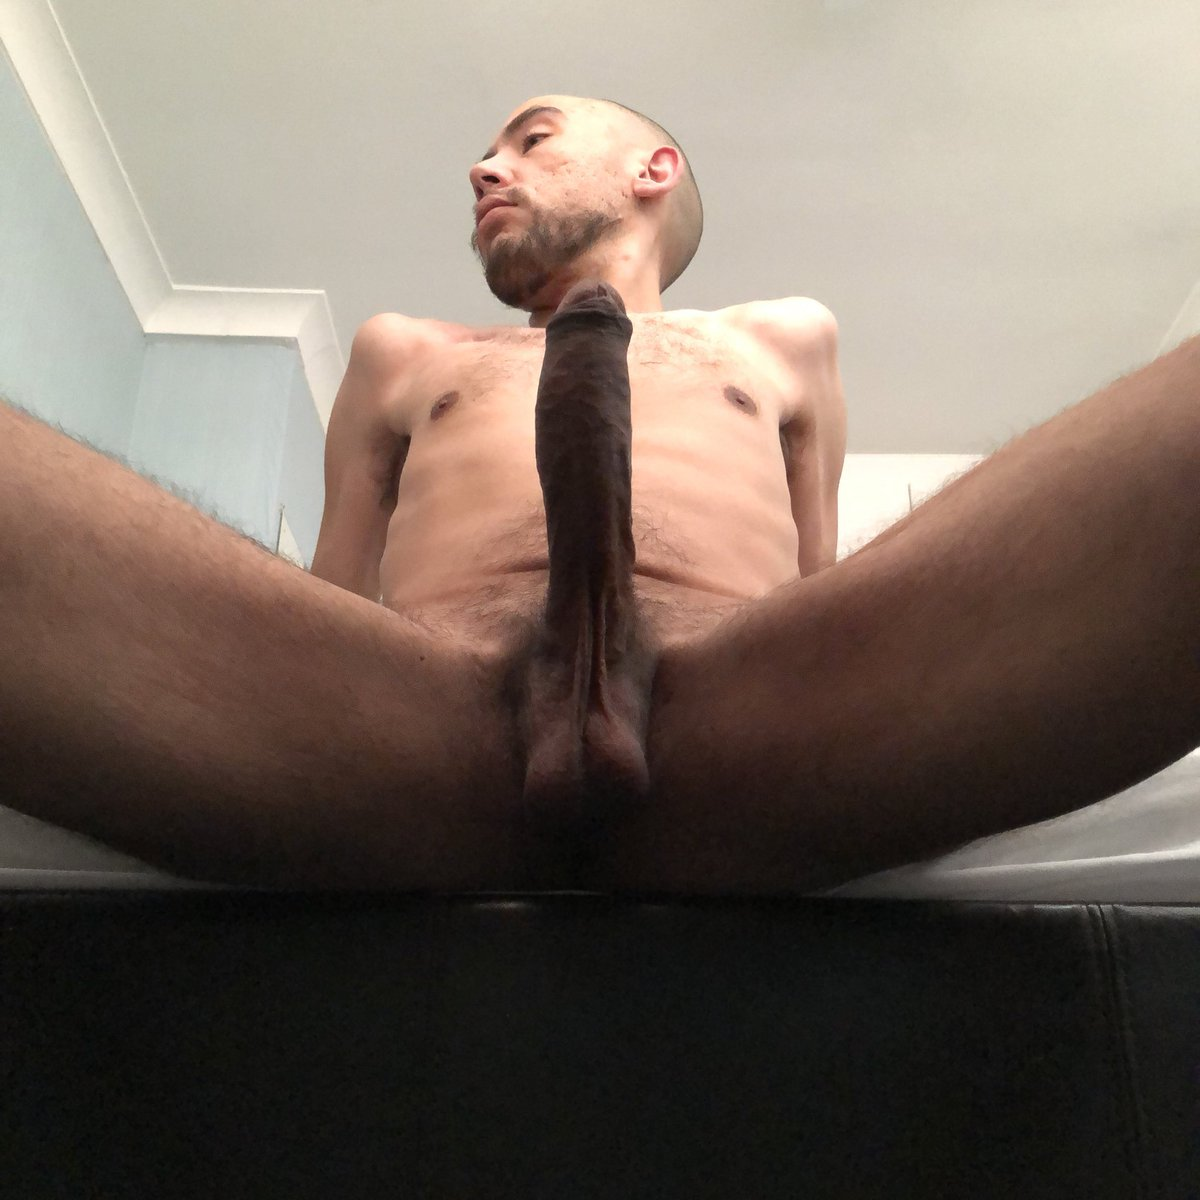 Aaron reese's entire huge cock sliding in and out of colt rivers he can hold on no more